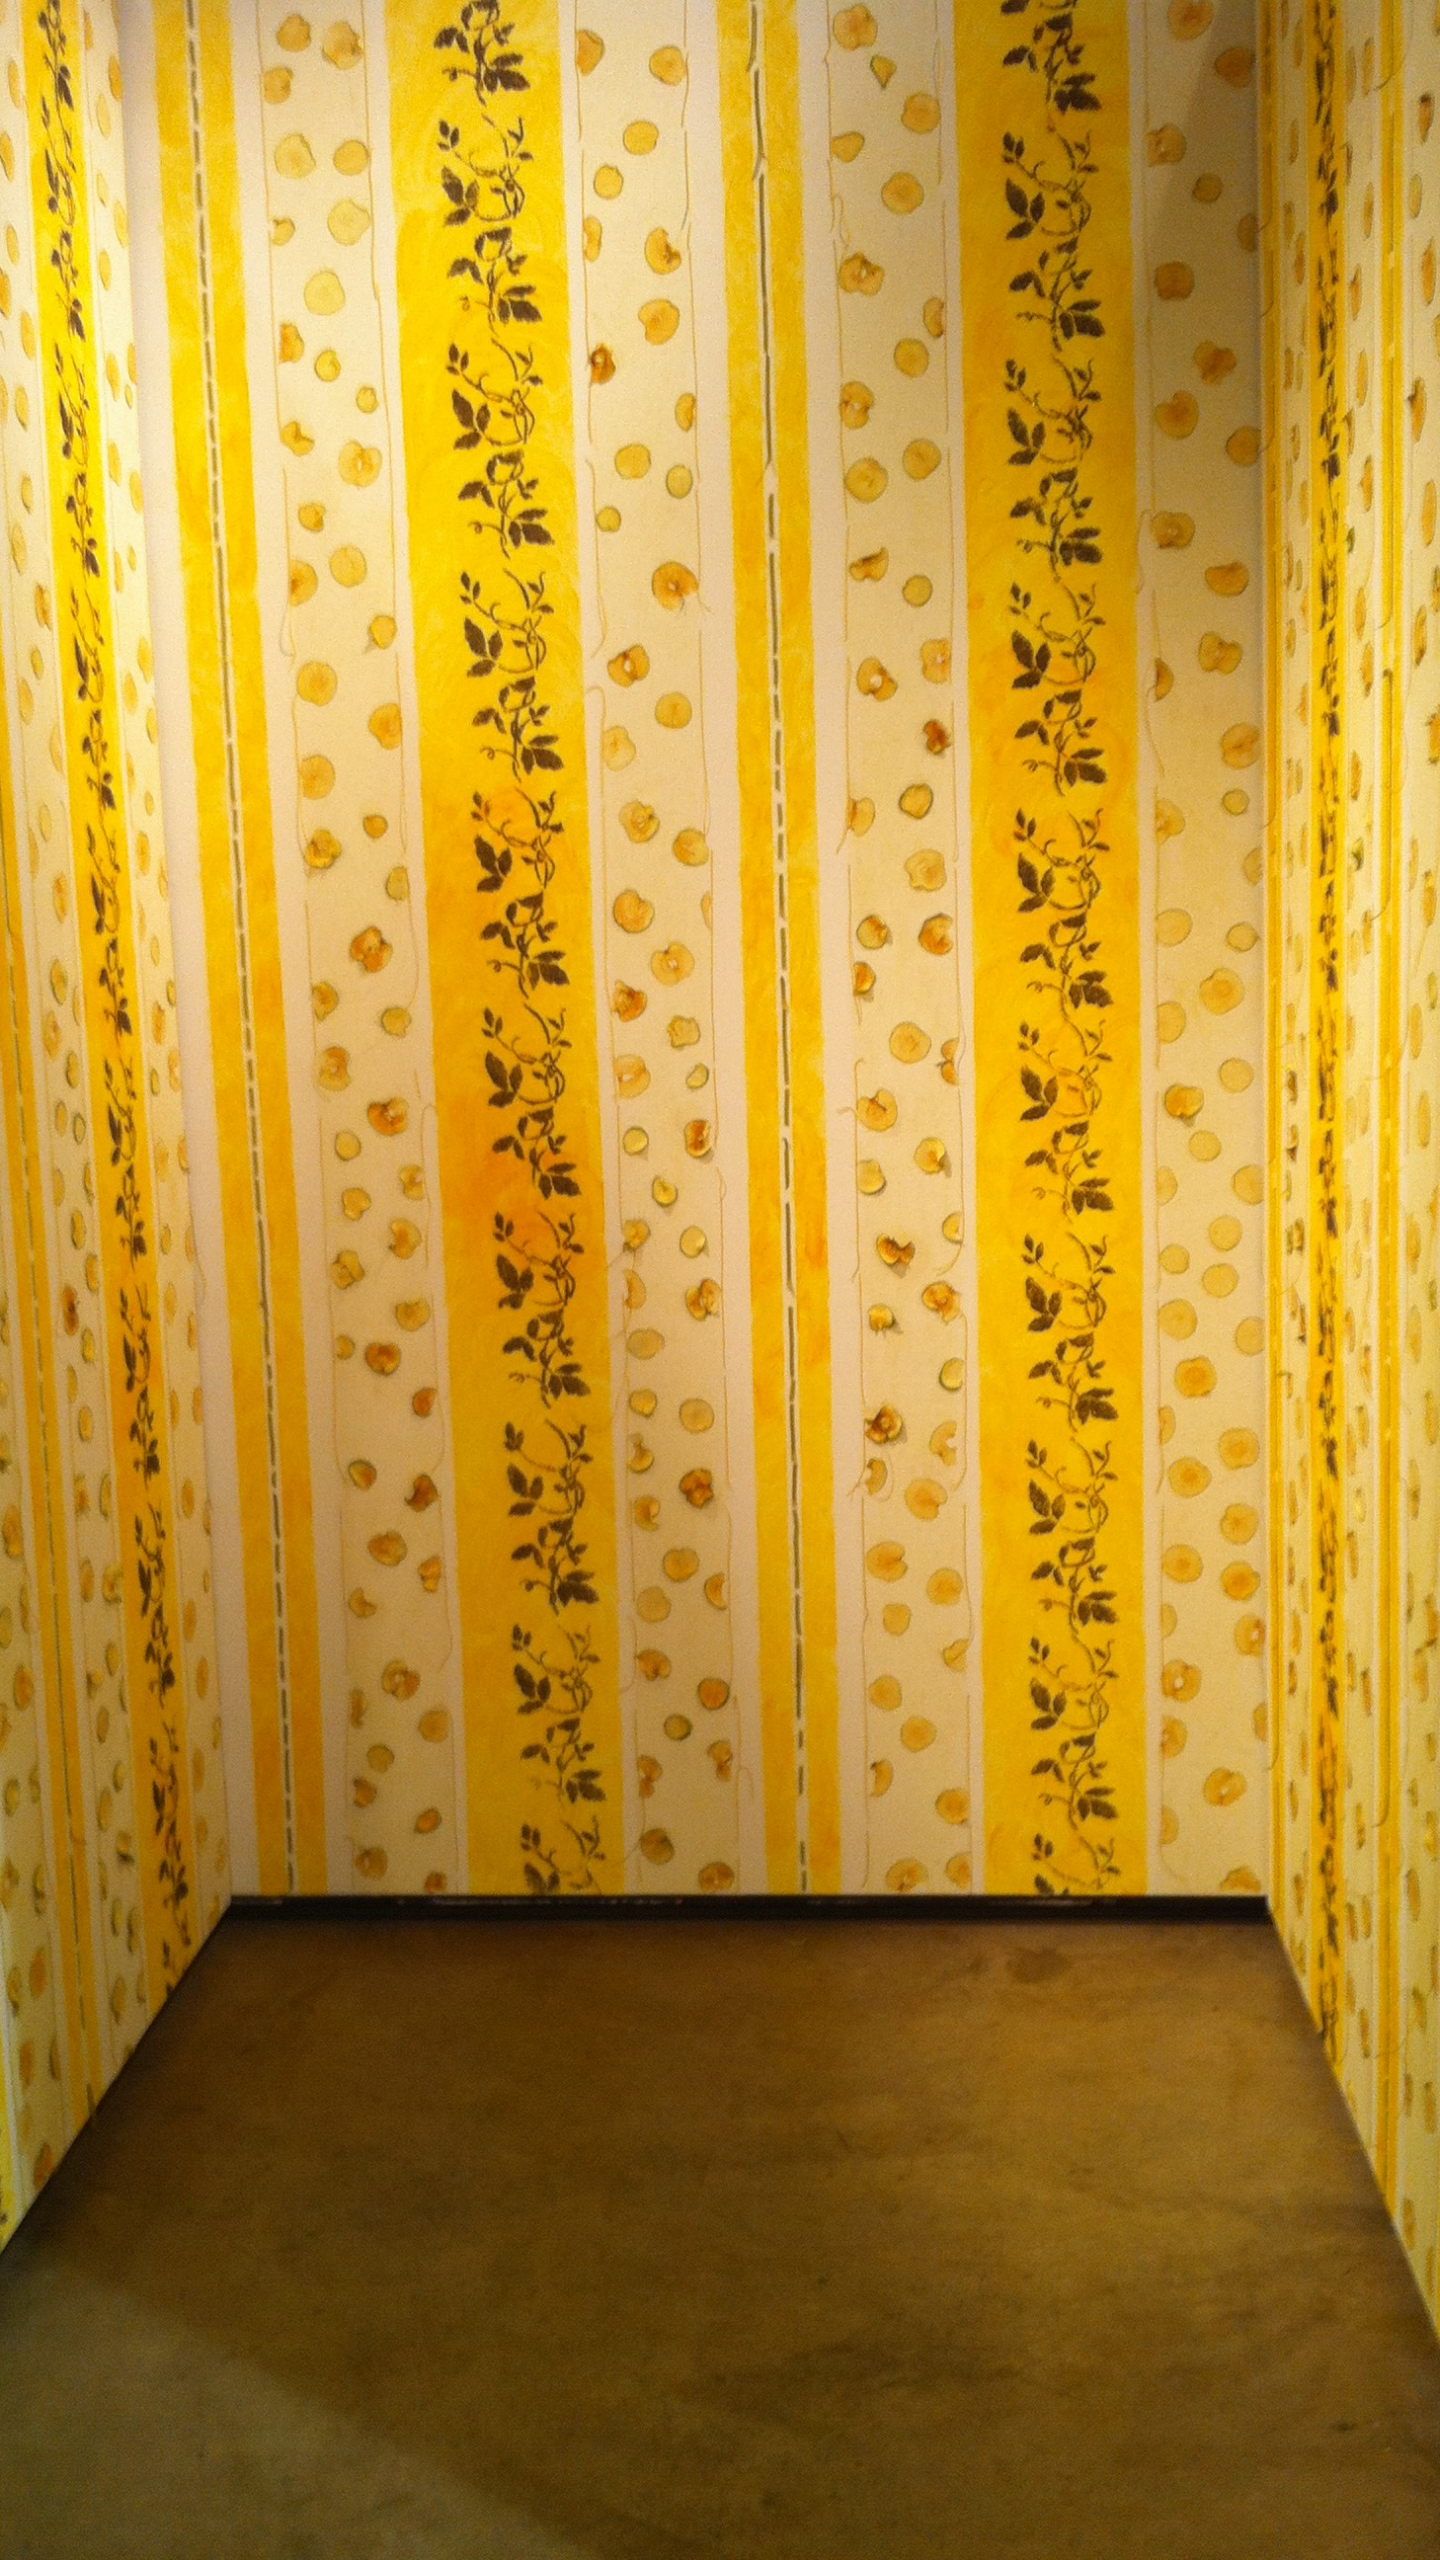 Free Download Essay On The Yellow Wallpaper Symbolism Amanda